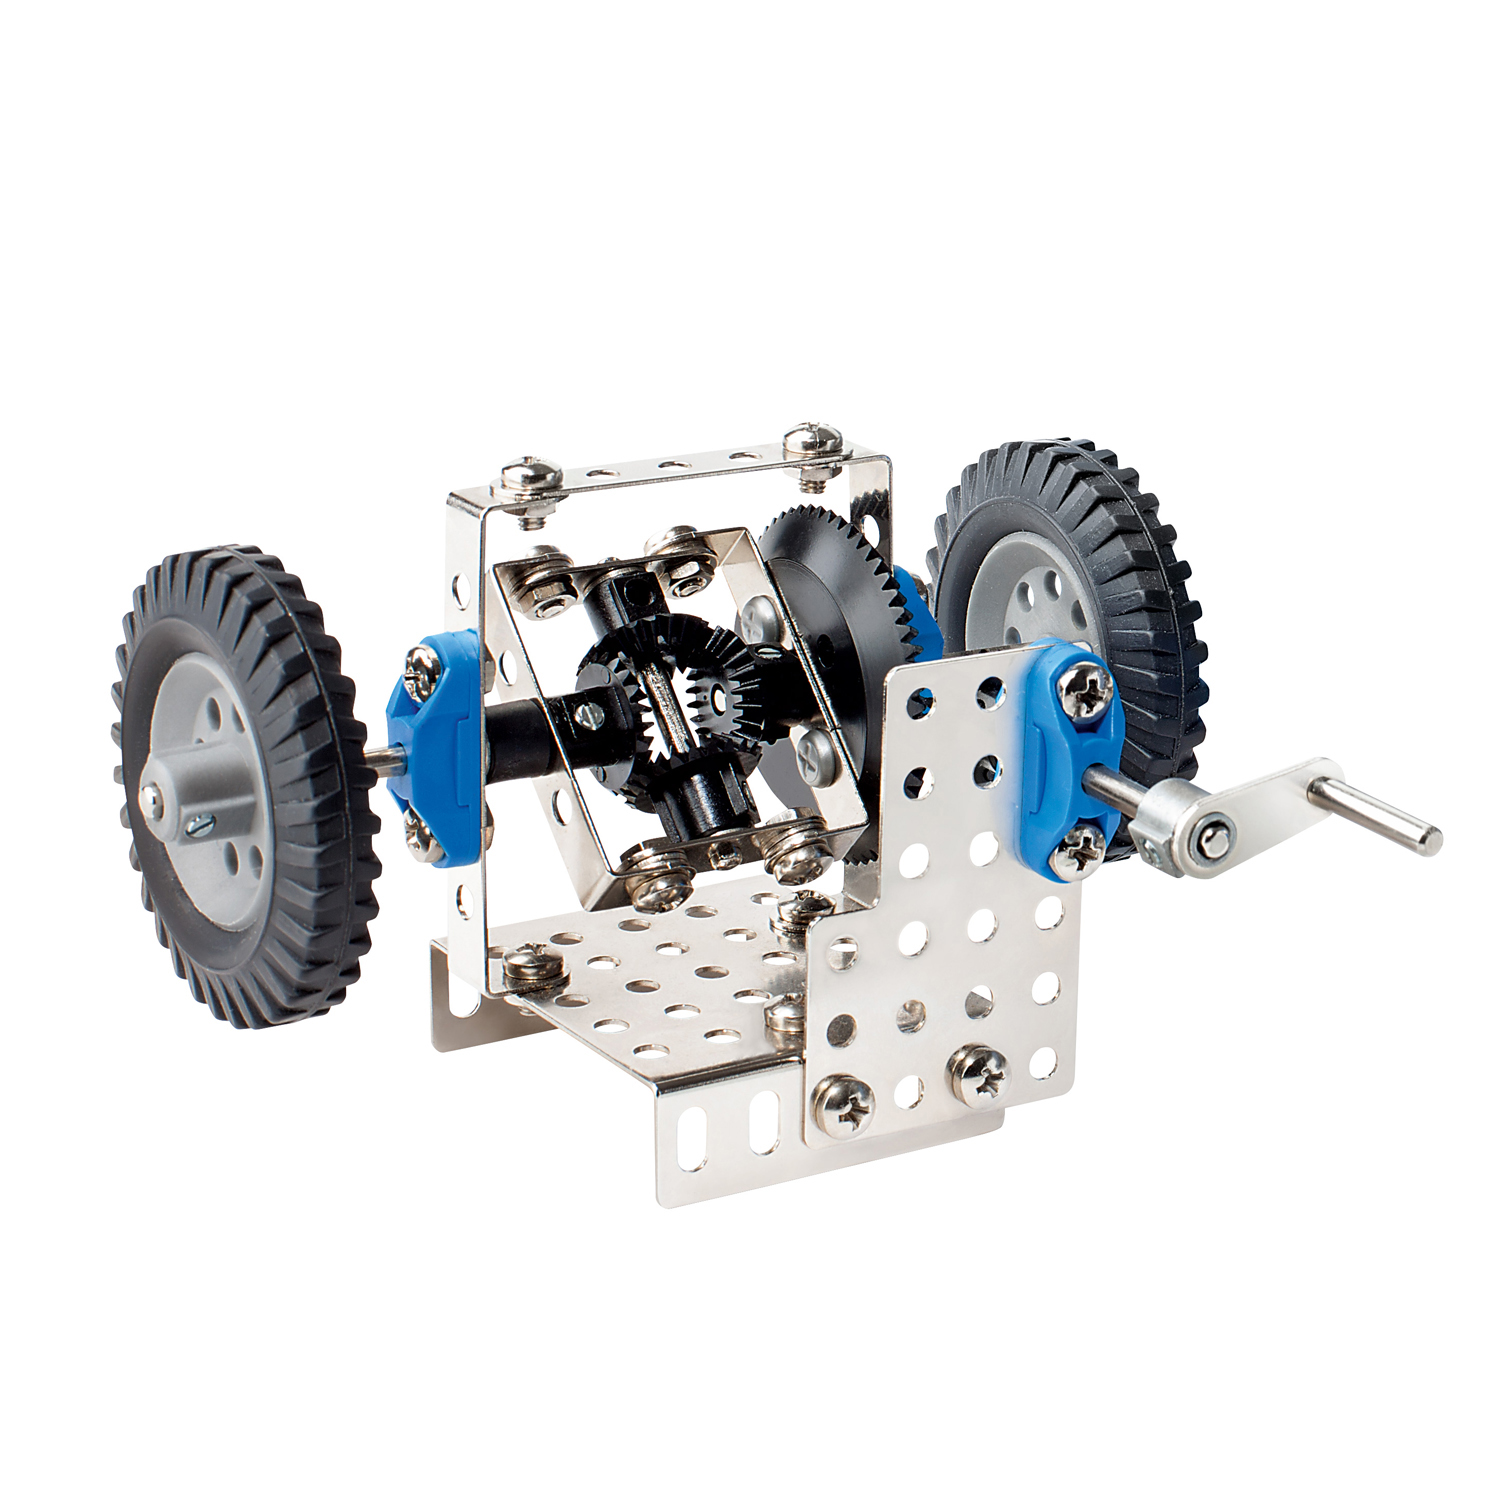 Eitech Construction Gearwheelset New Classic Toys